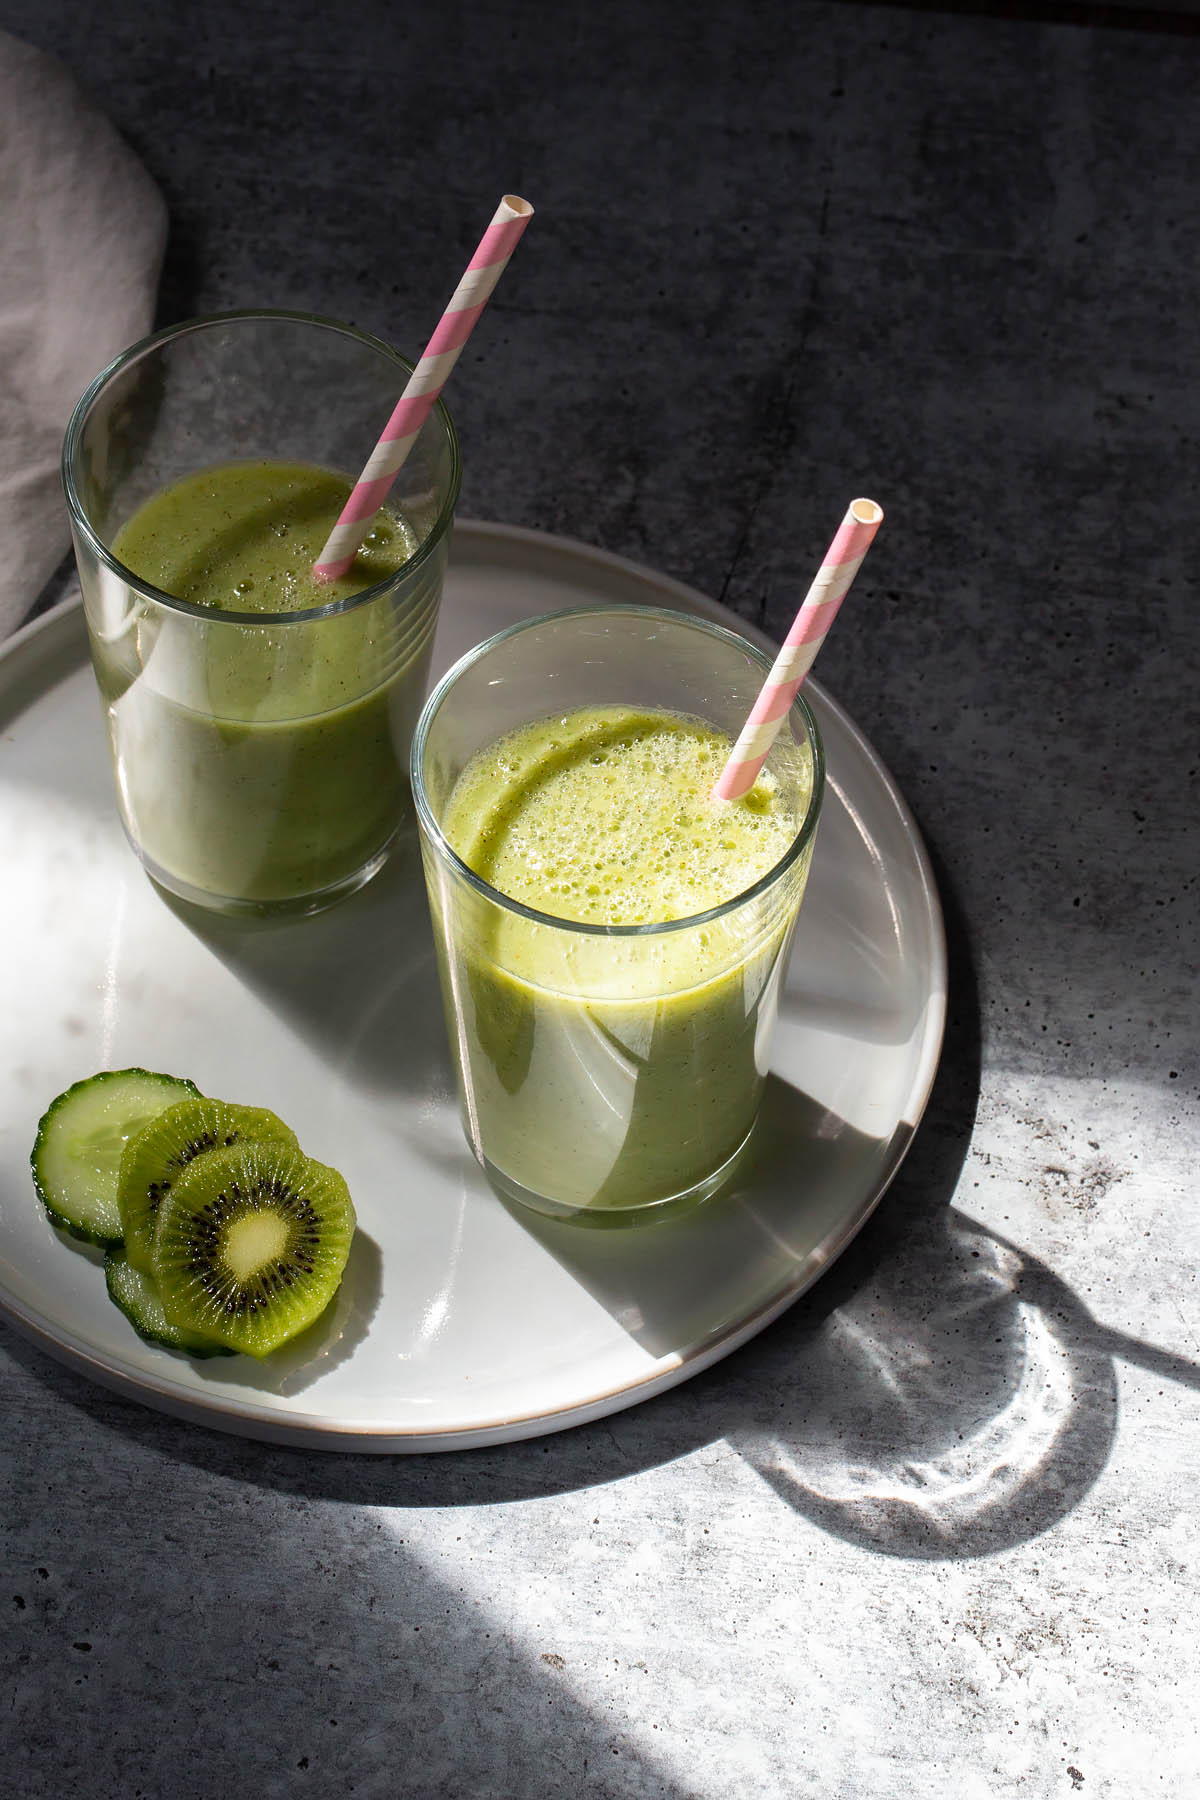 kiwi and cucumber smoothies with a straw